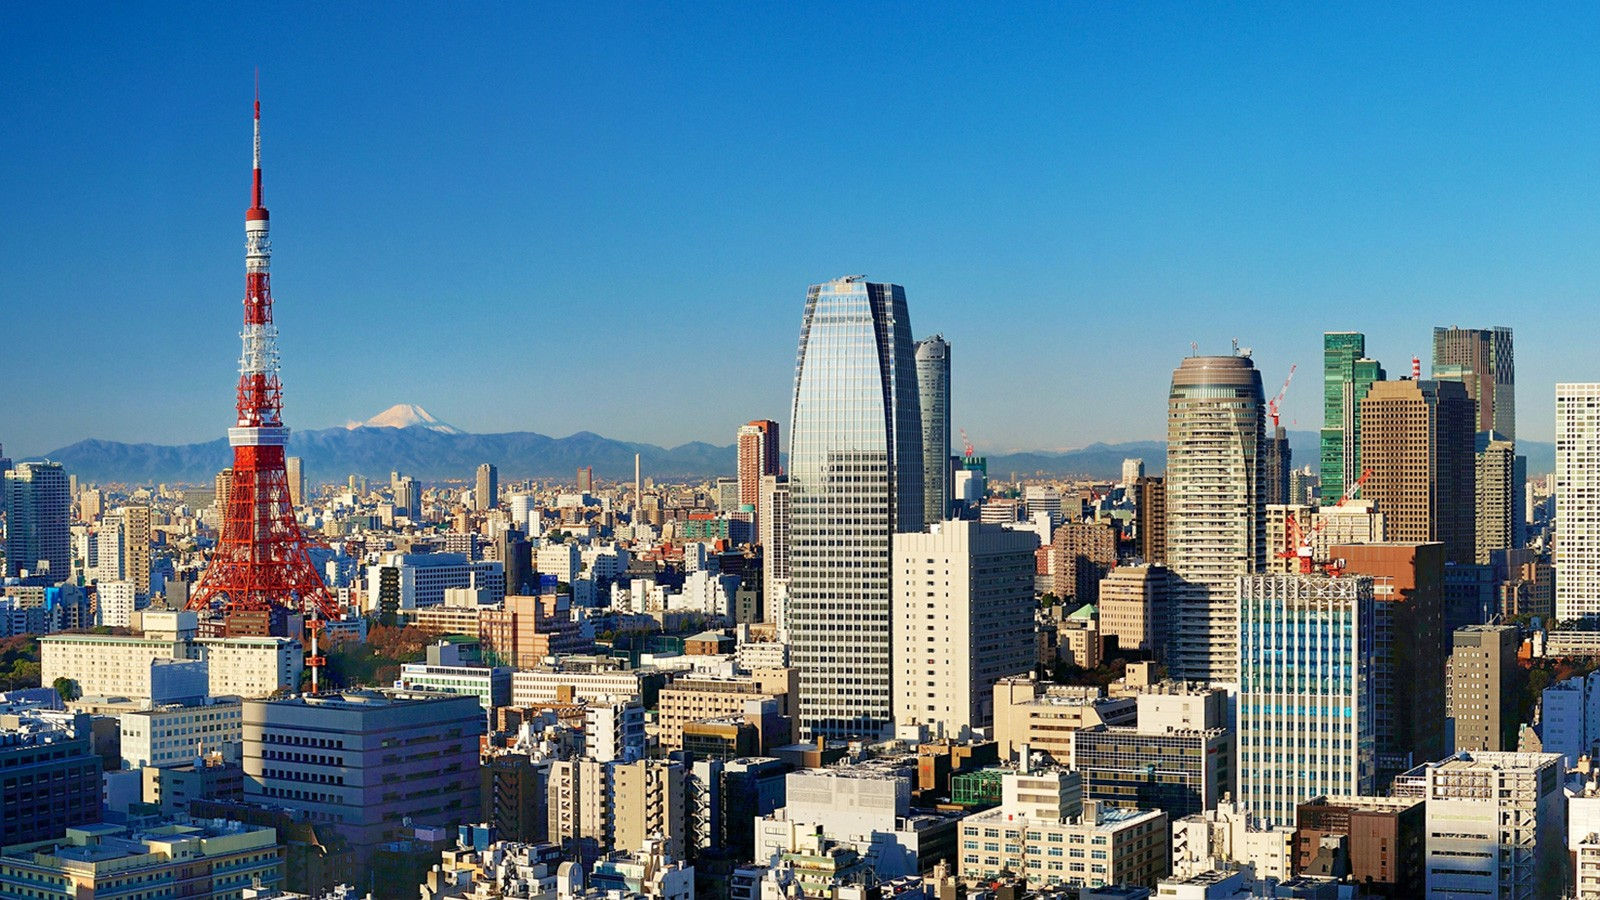 city view of Tokyo